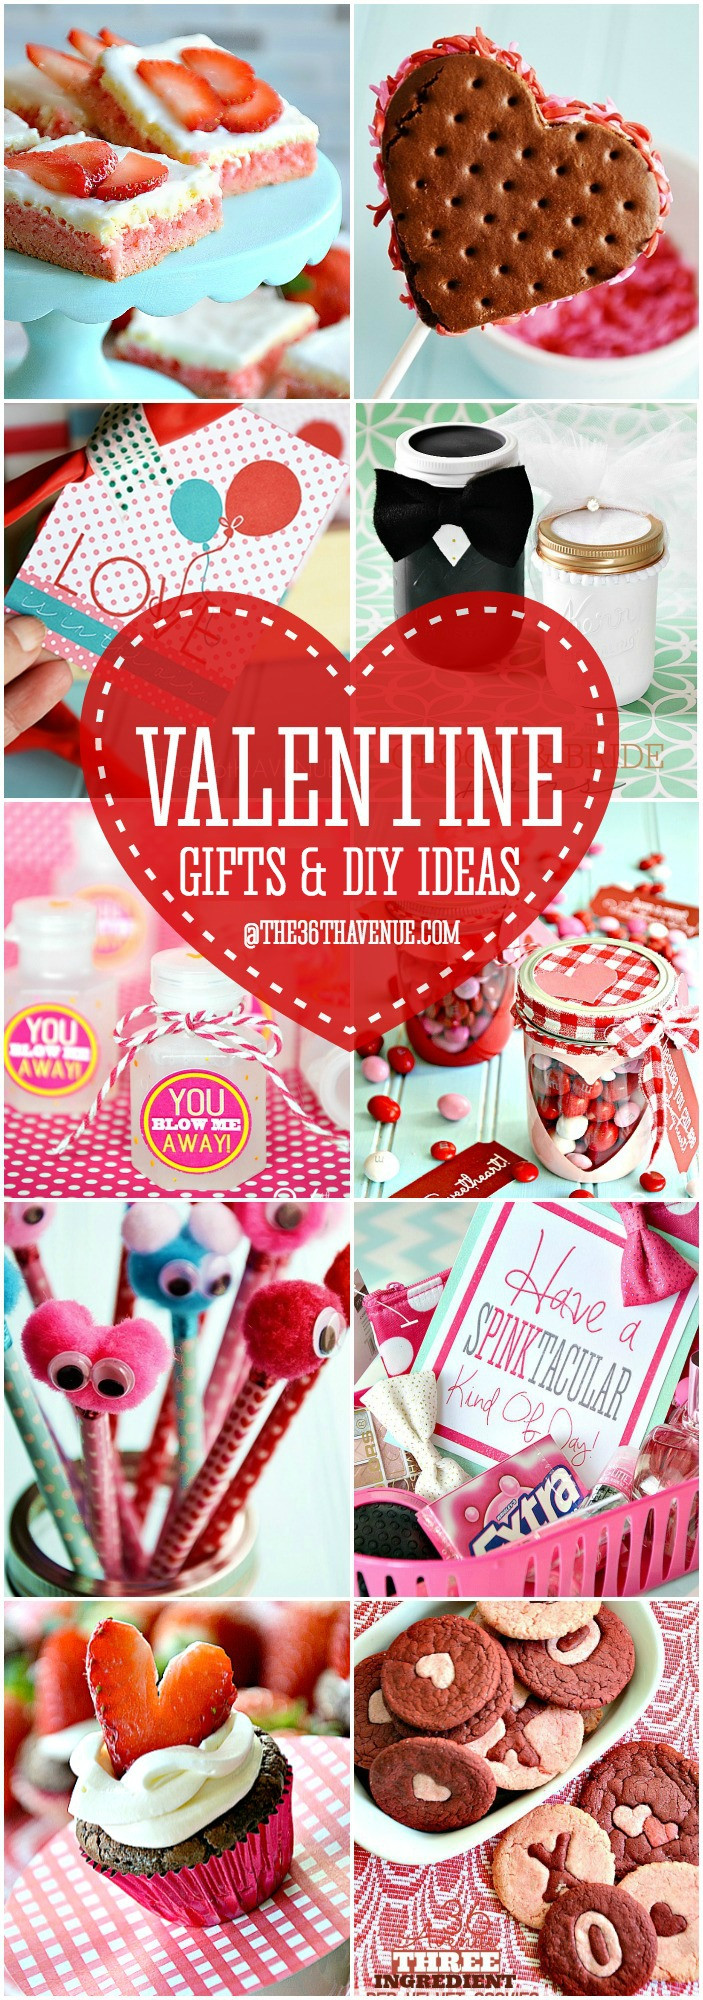 Diy Valentines Gift Ideas  Adorable Valentine Gift Ideas The 36th AVENUE